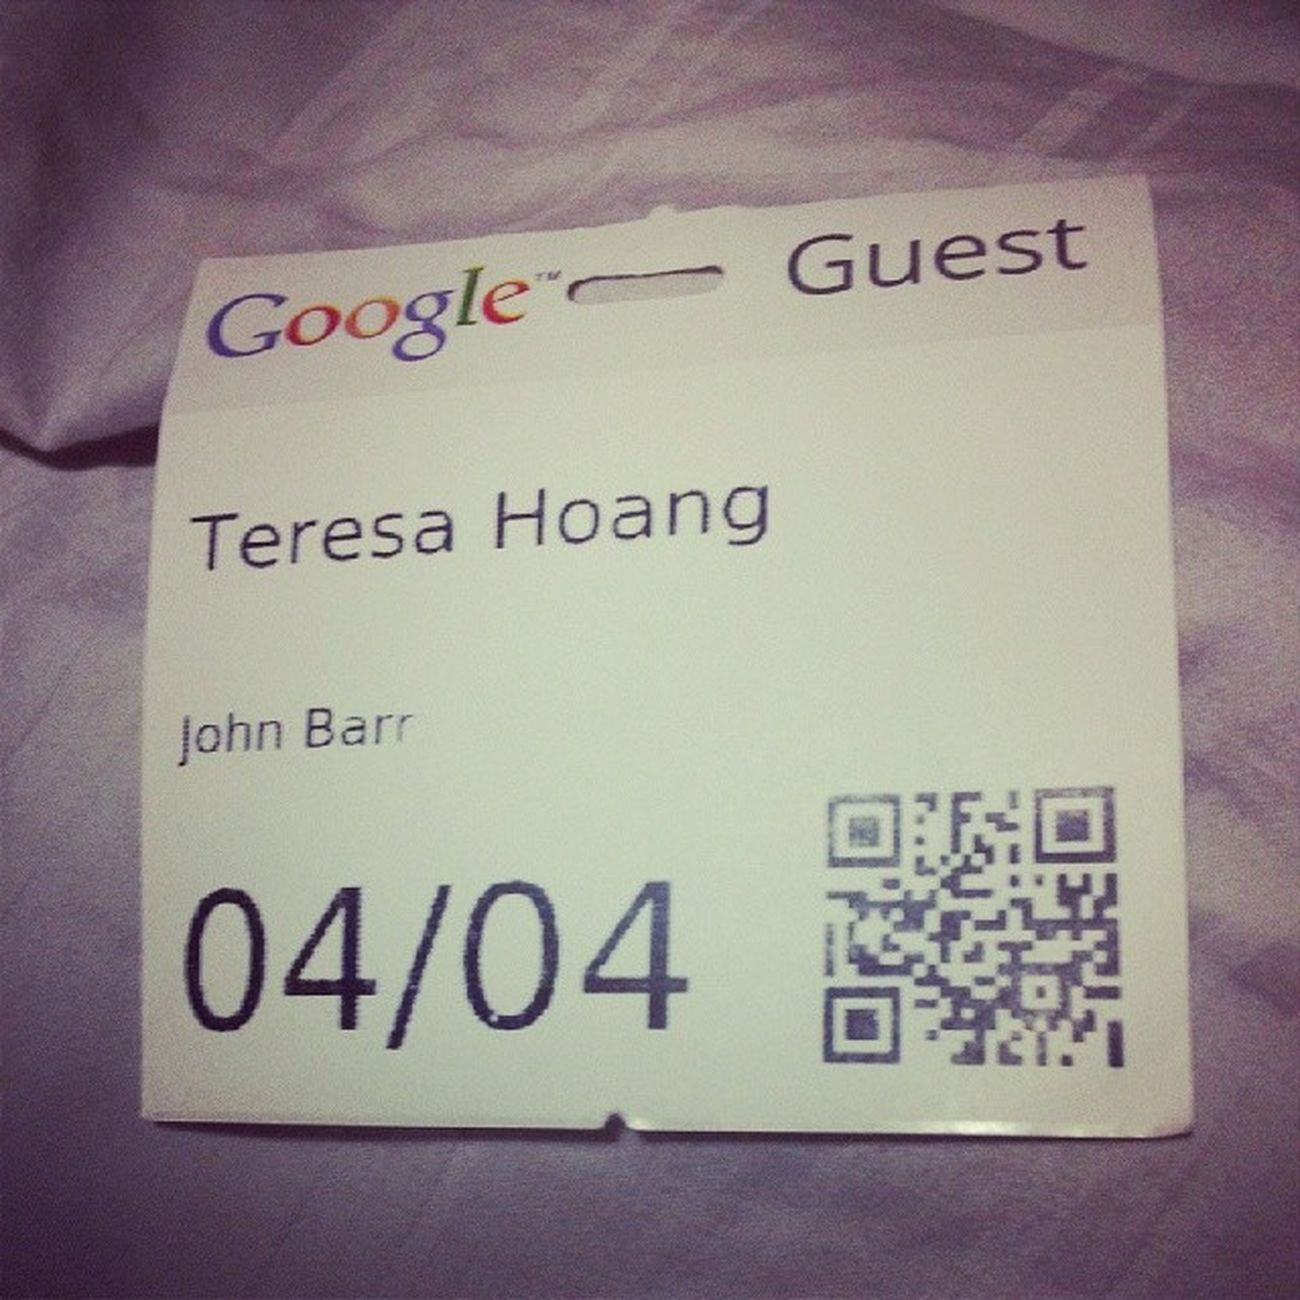 Soo this happened today. I'm working in the wrong field/building. Google Playground Allthefun Ineedtogoback awesome